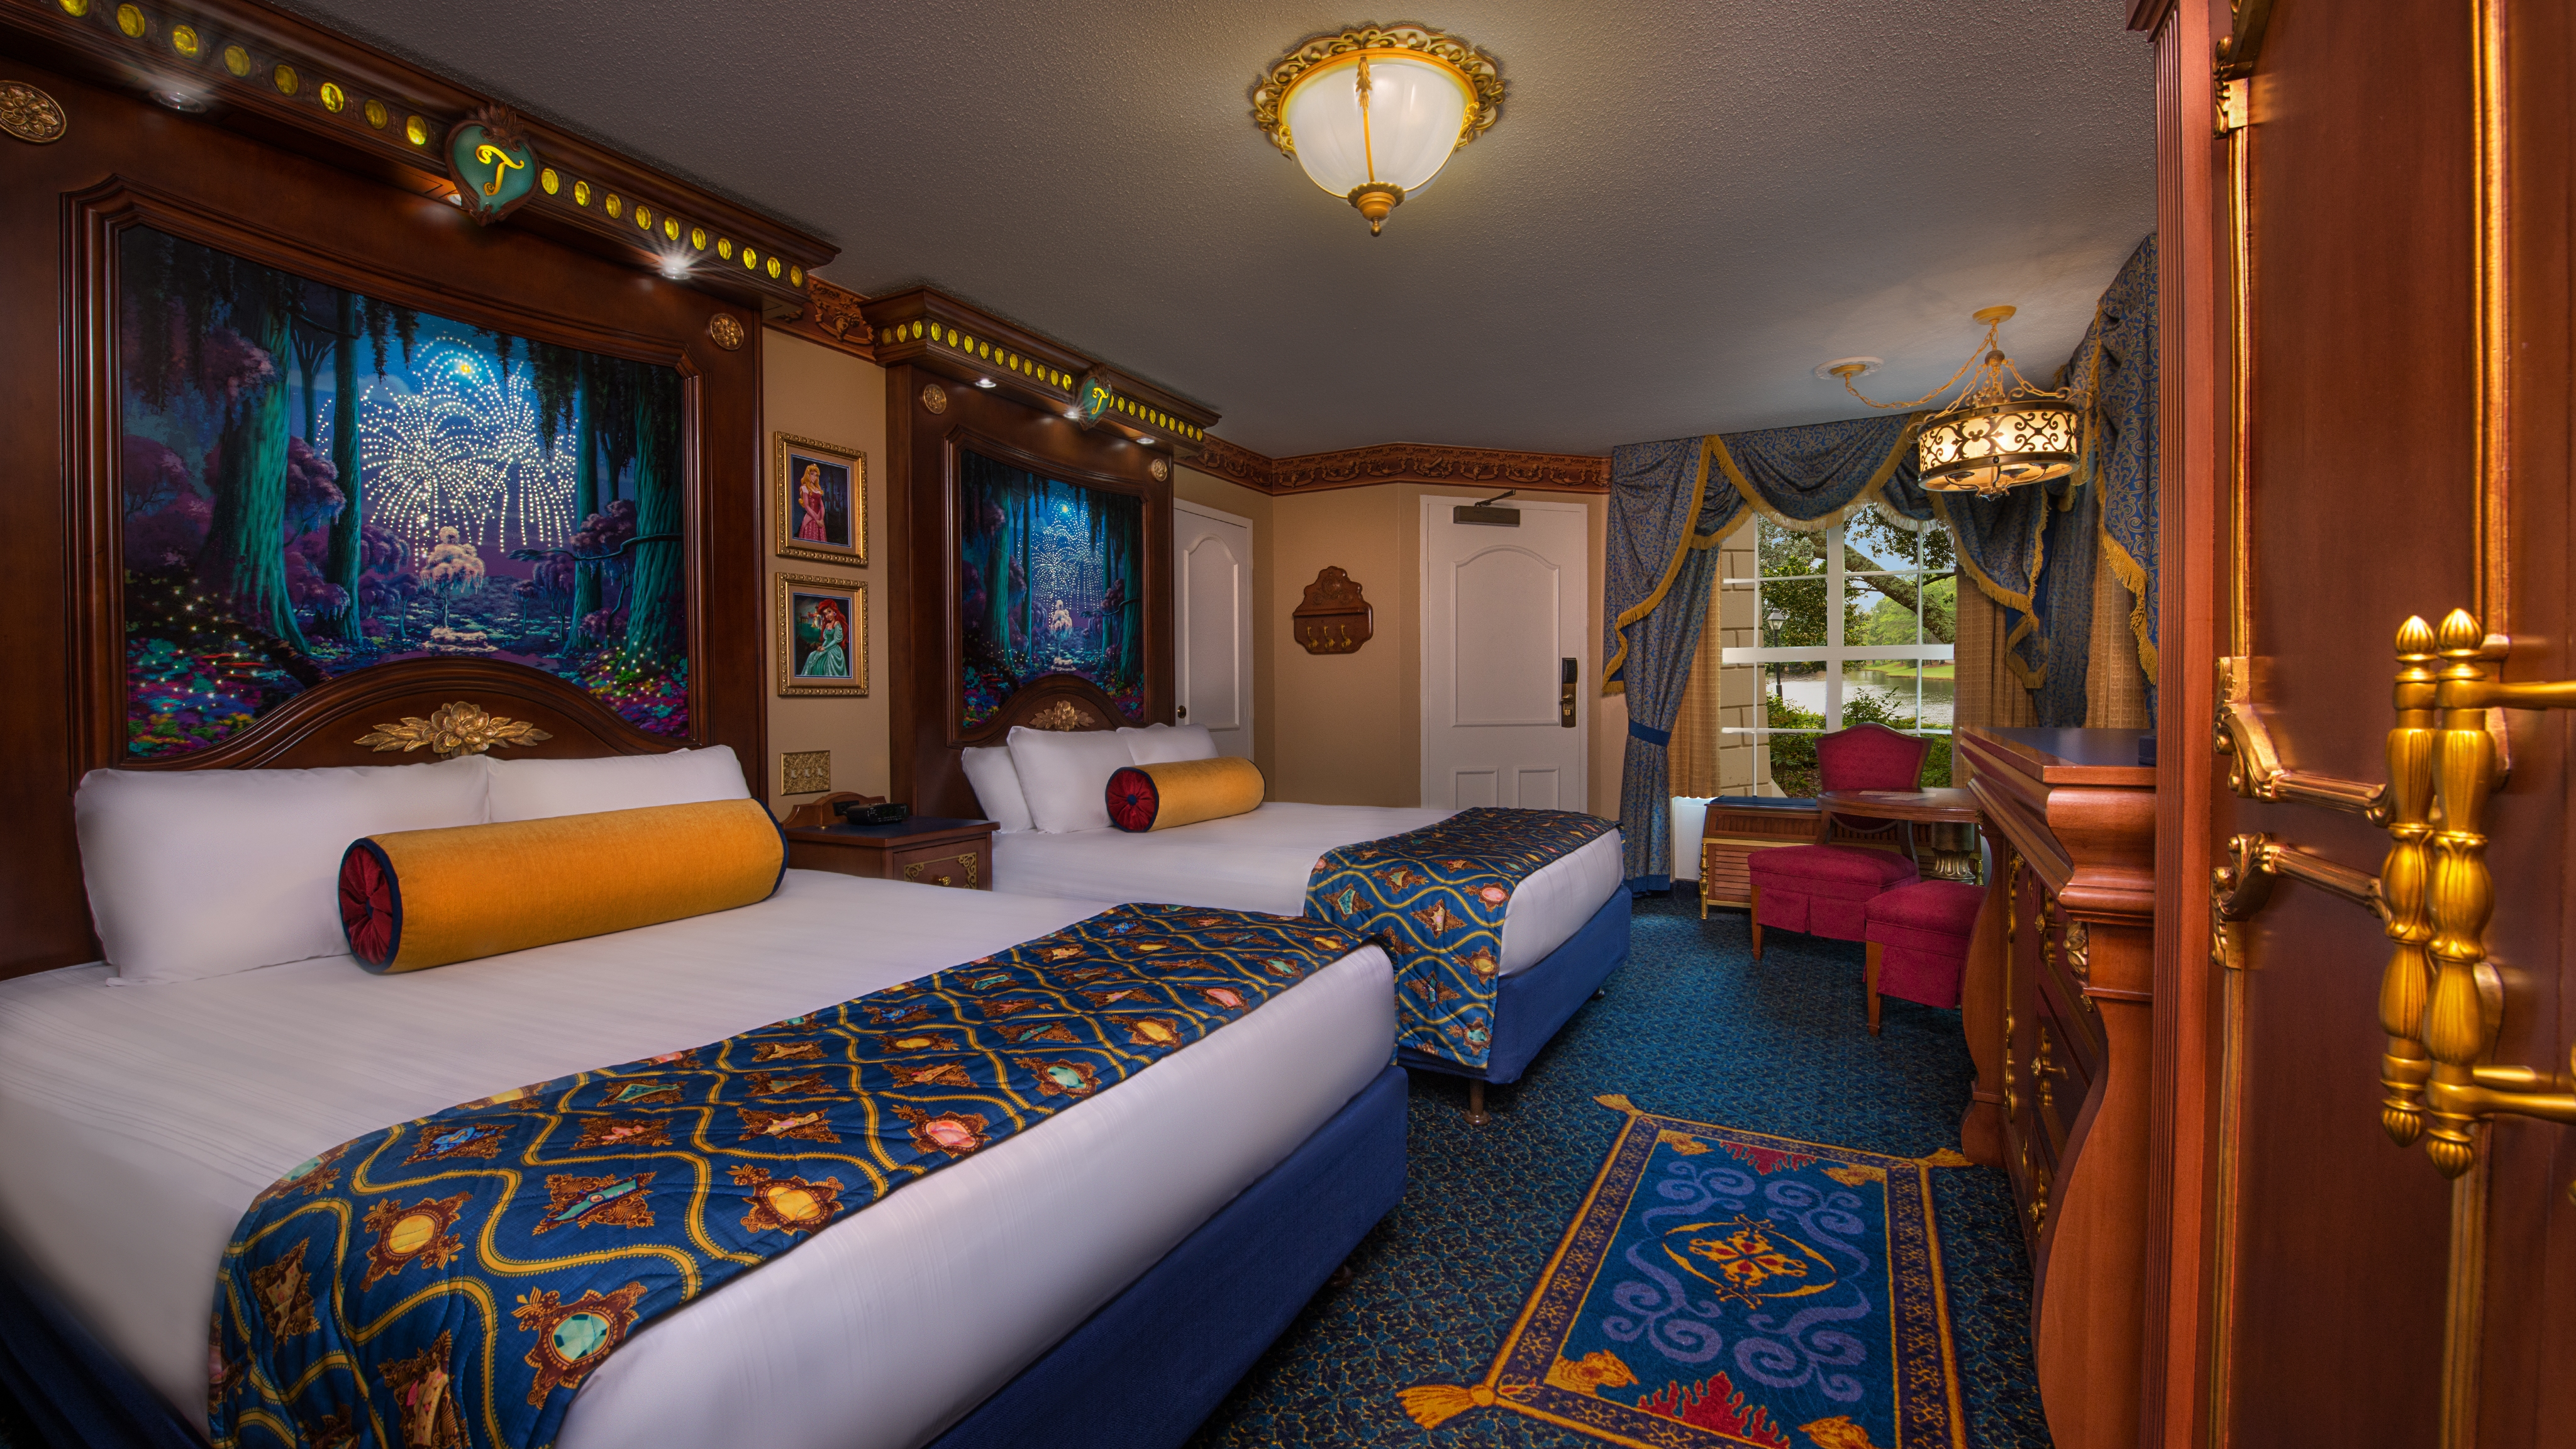 Royal Guest Room River View Themeparkbeds Com